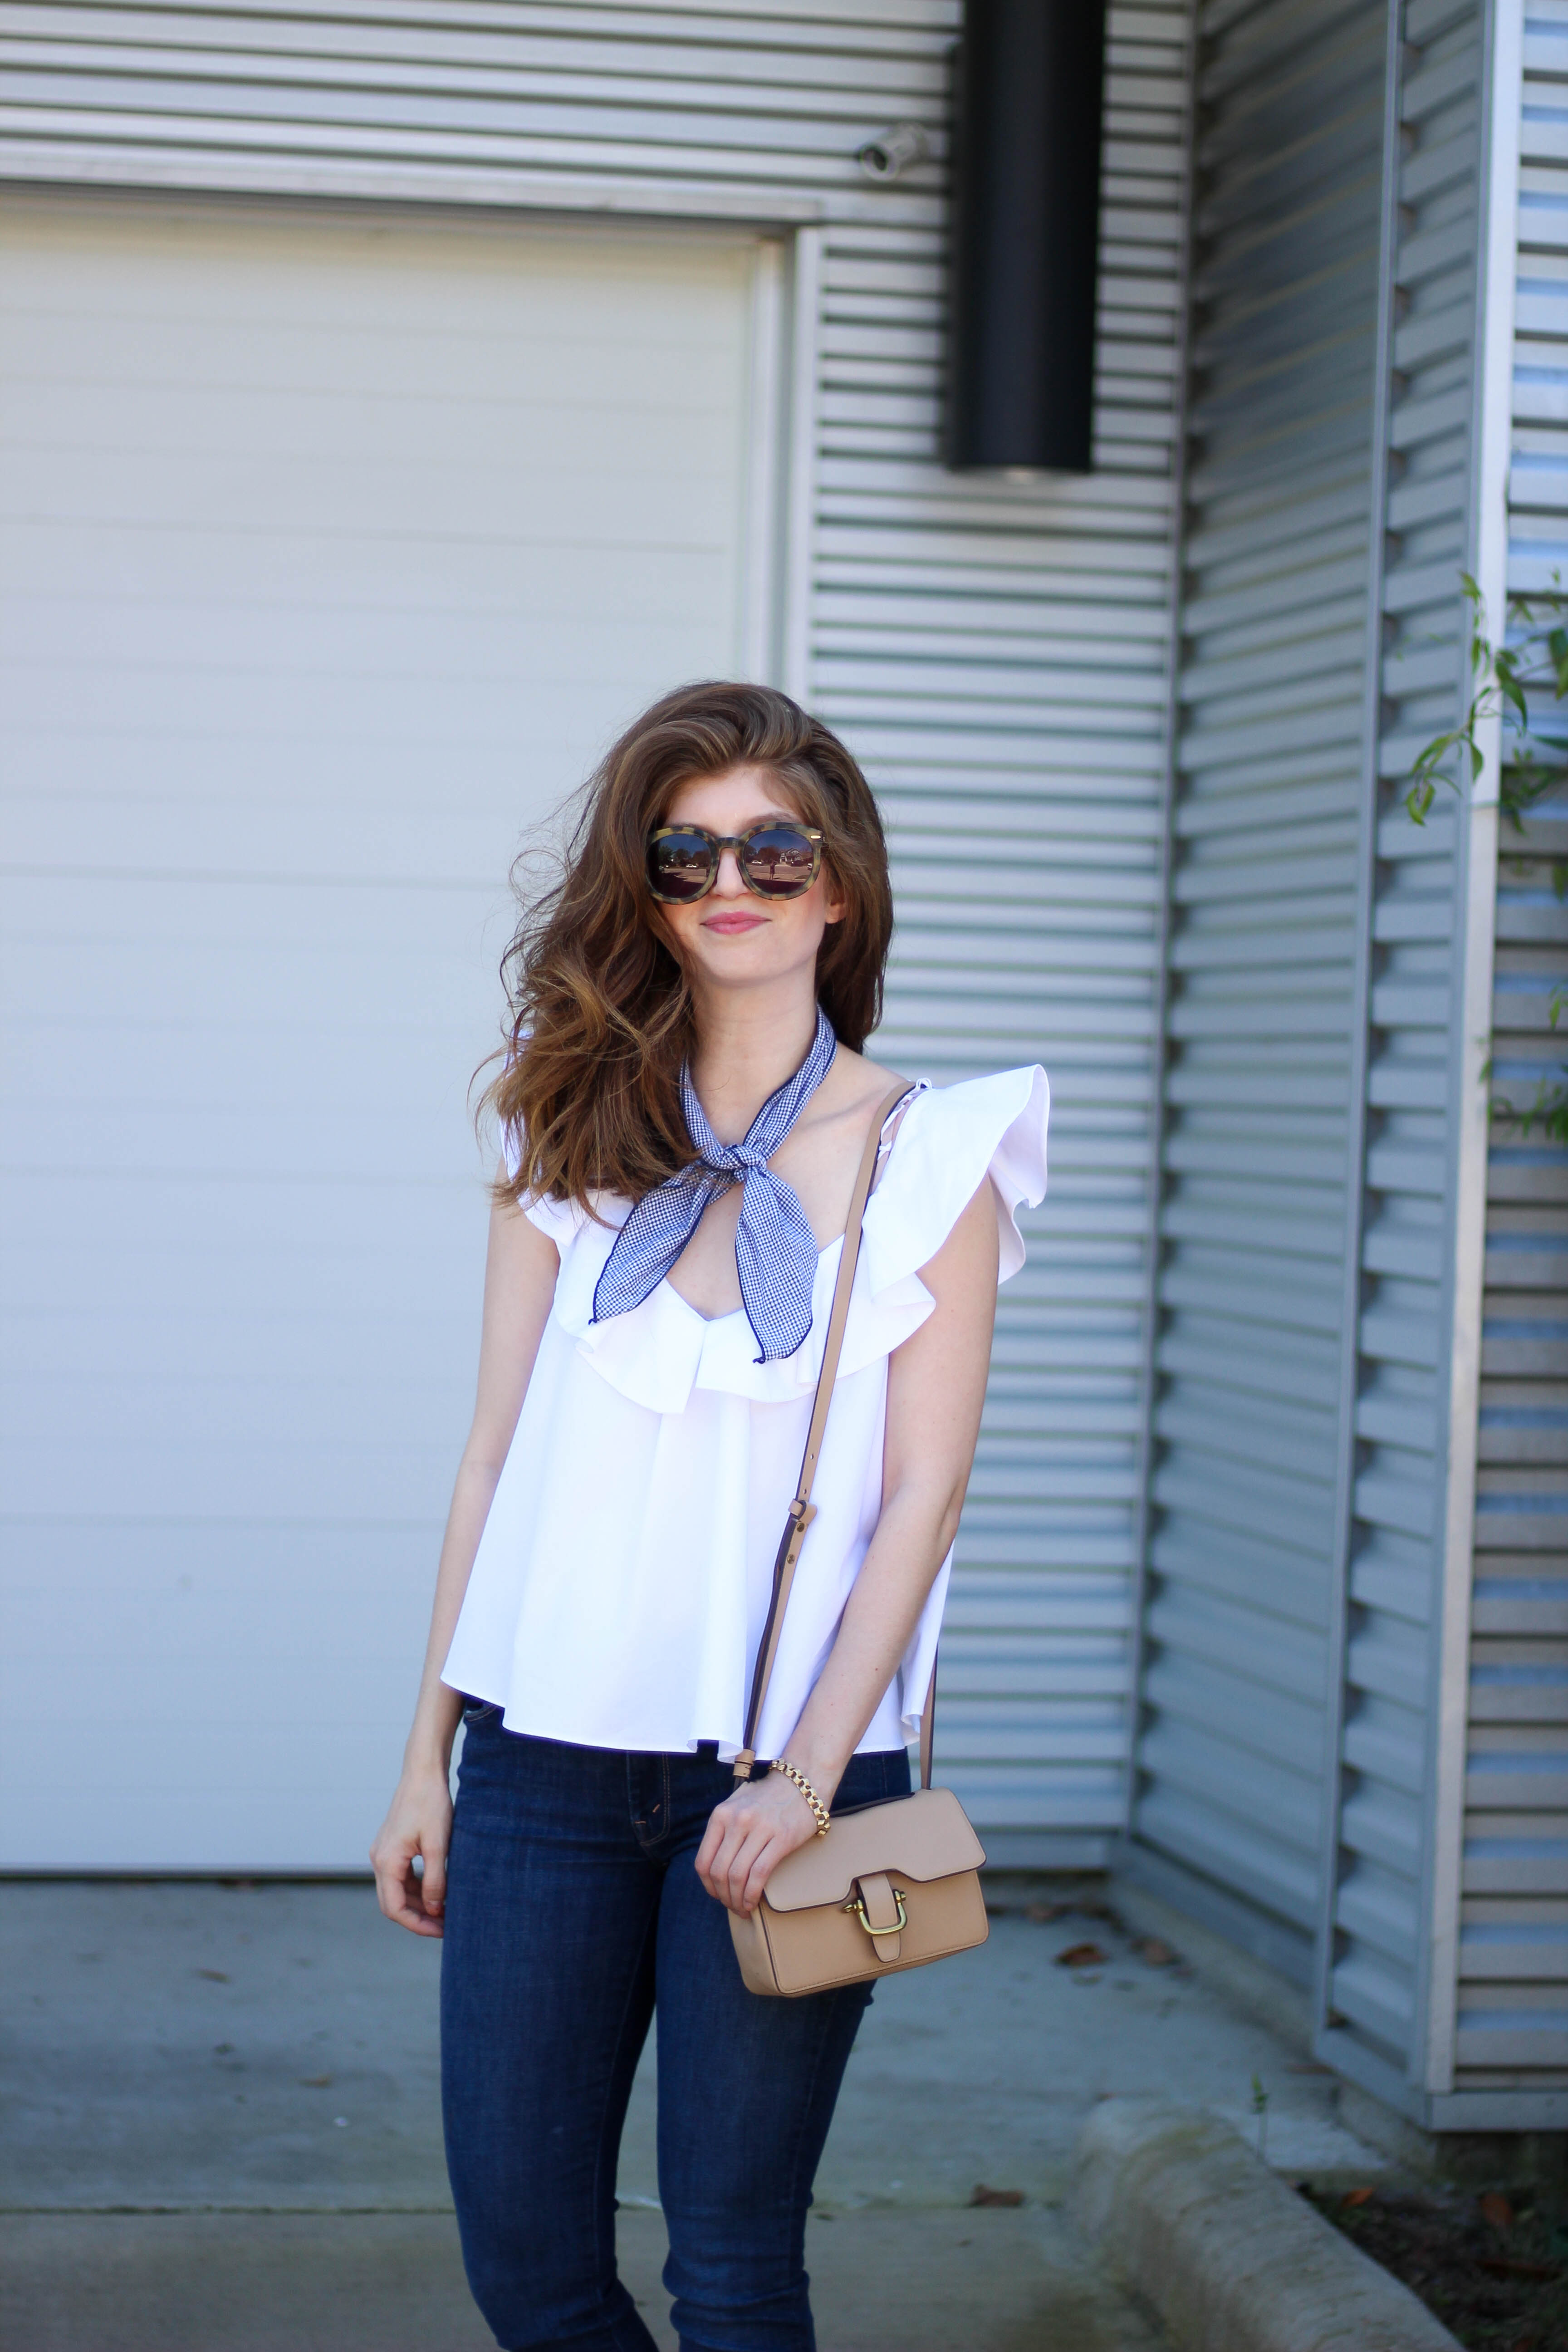 outfit: Donni Charm